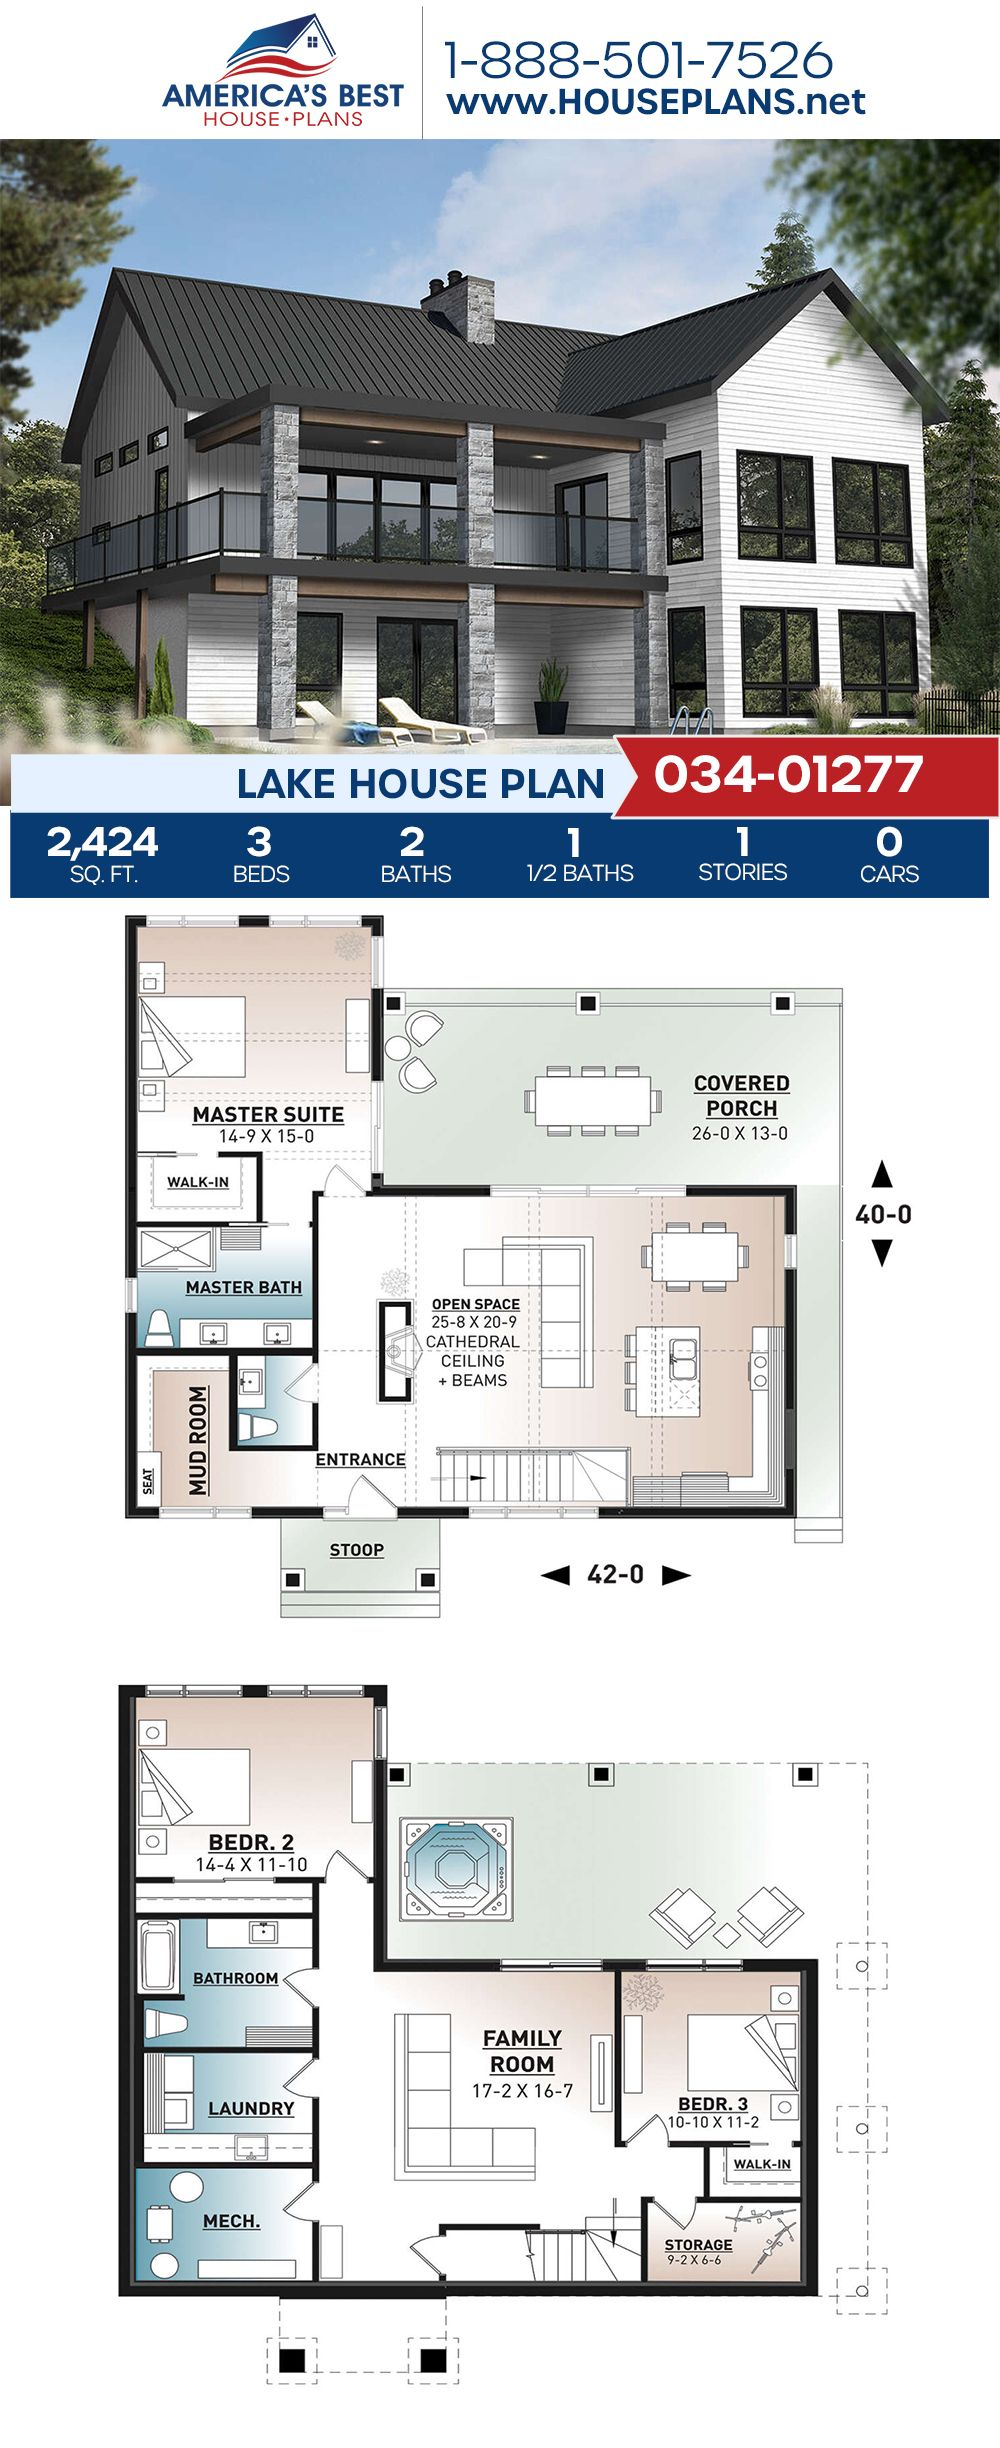 House Plan 034 01277 Lake Front Plan 2 424 Square Feet 3 Bedrooms 2 5 Bathrooms Lake House Plans Beach House Plans Porch House Plans